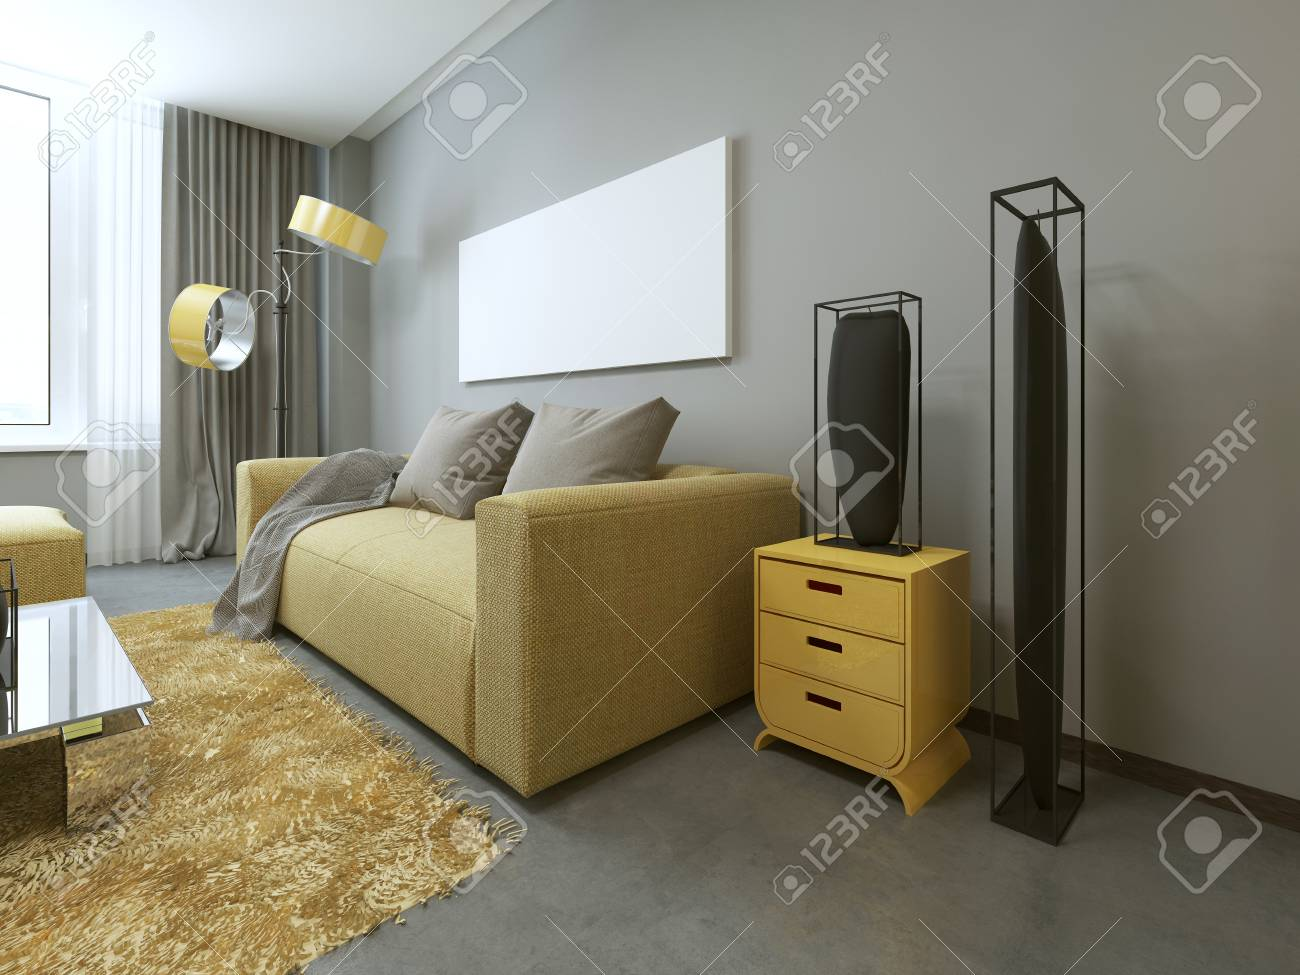 Contemporary Living Room With Yellow Furniture And Gray Walls